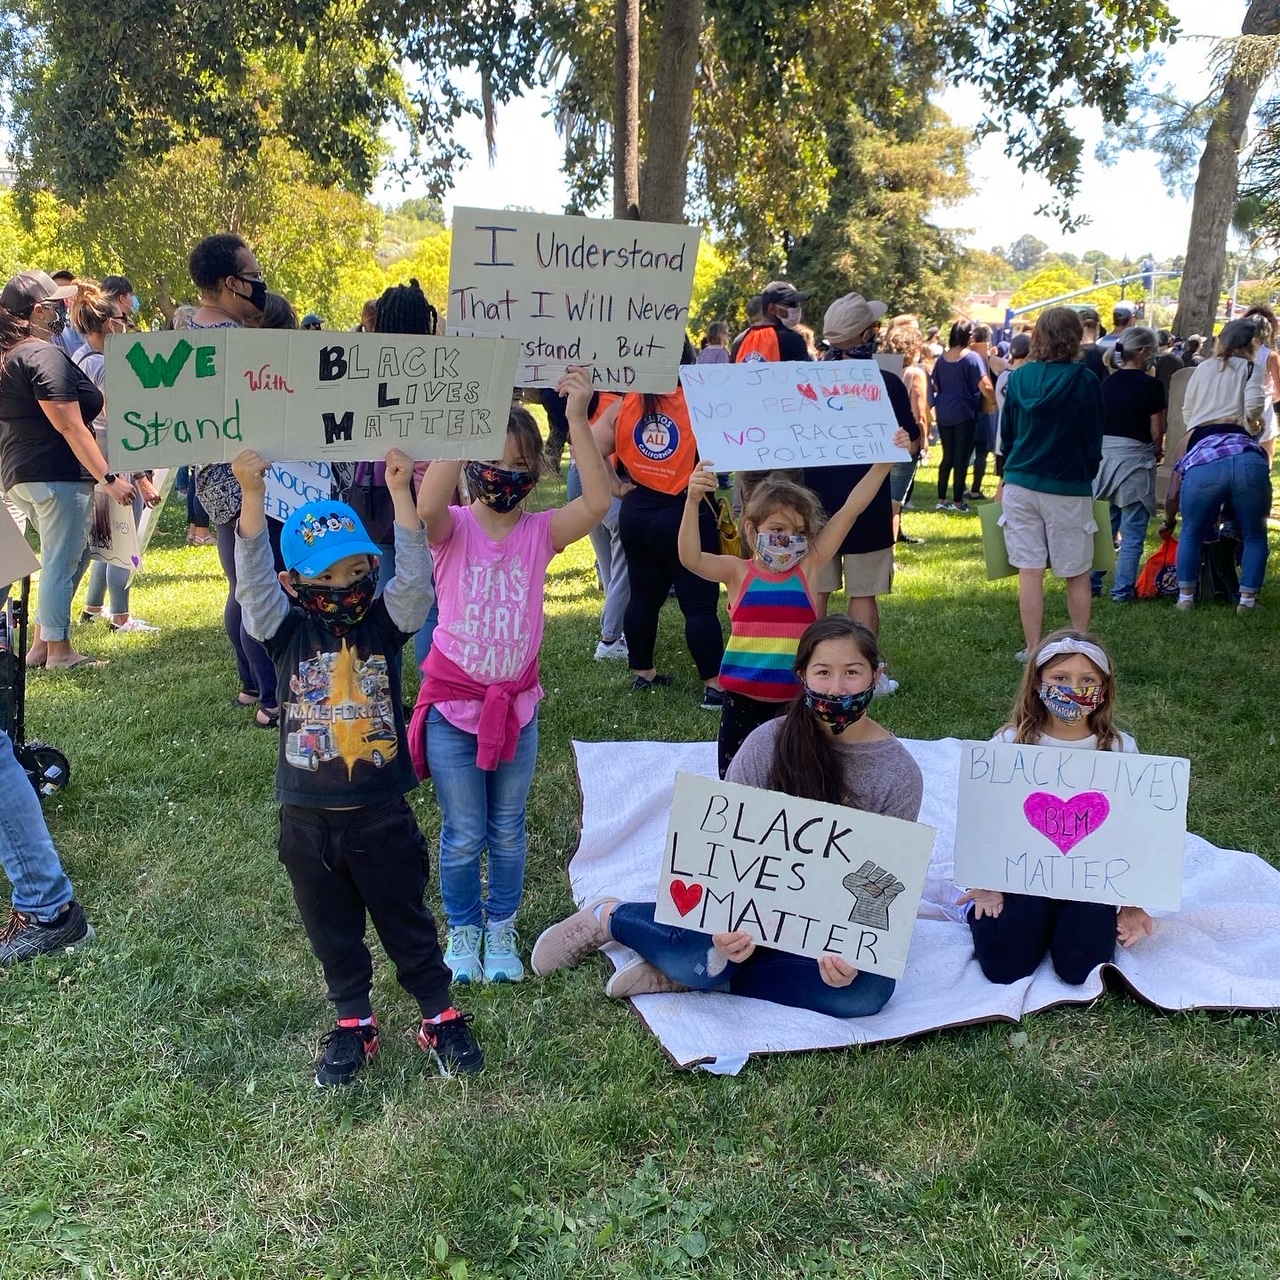 Benicia Responds; Black Lives Matter